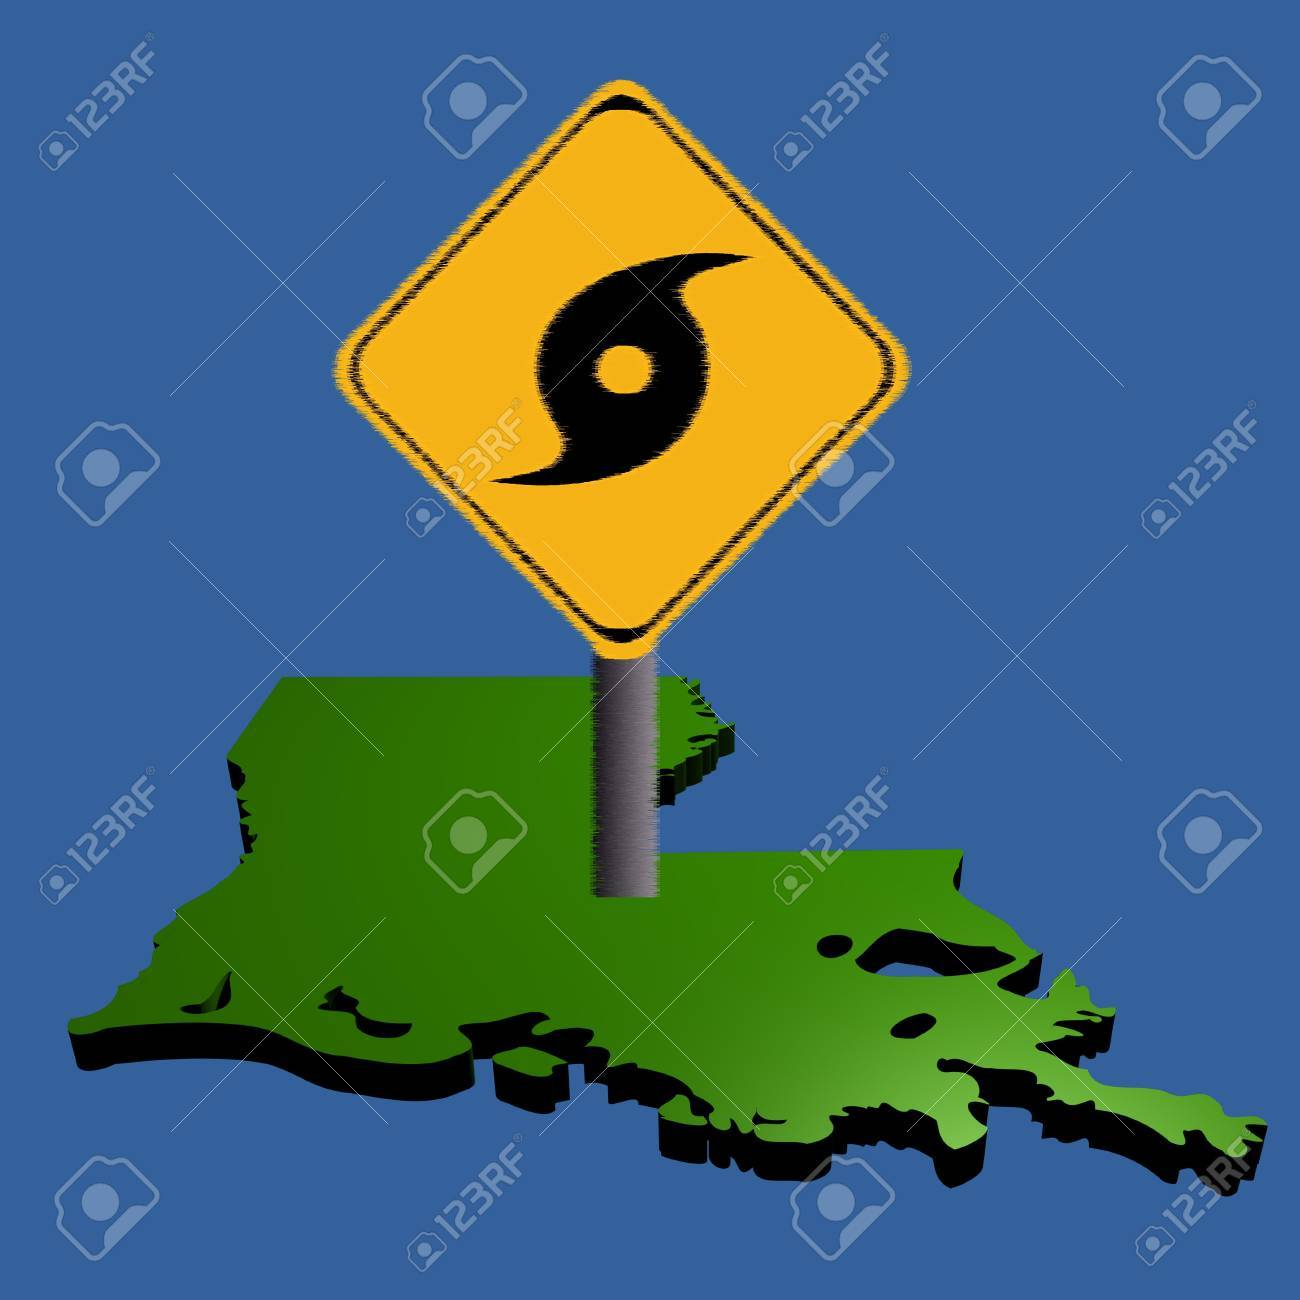 Louisiana Traffic Map.Hurricane Warning Sign On Louisiana Map Illustration Stock Photo